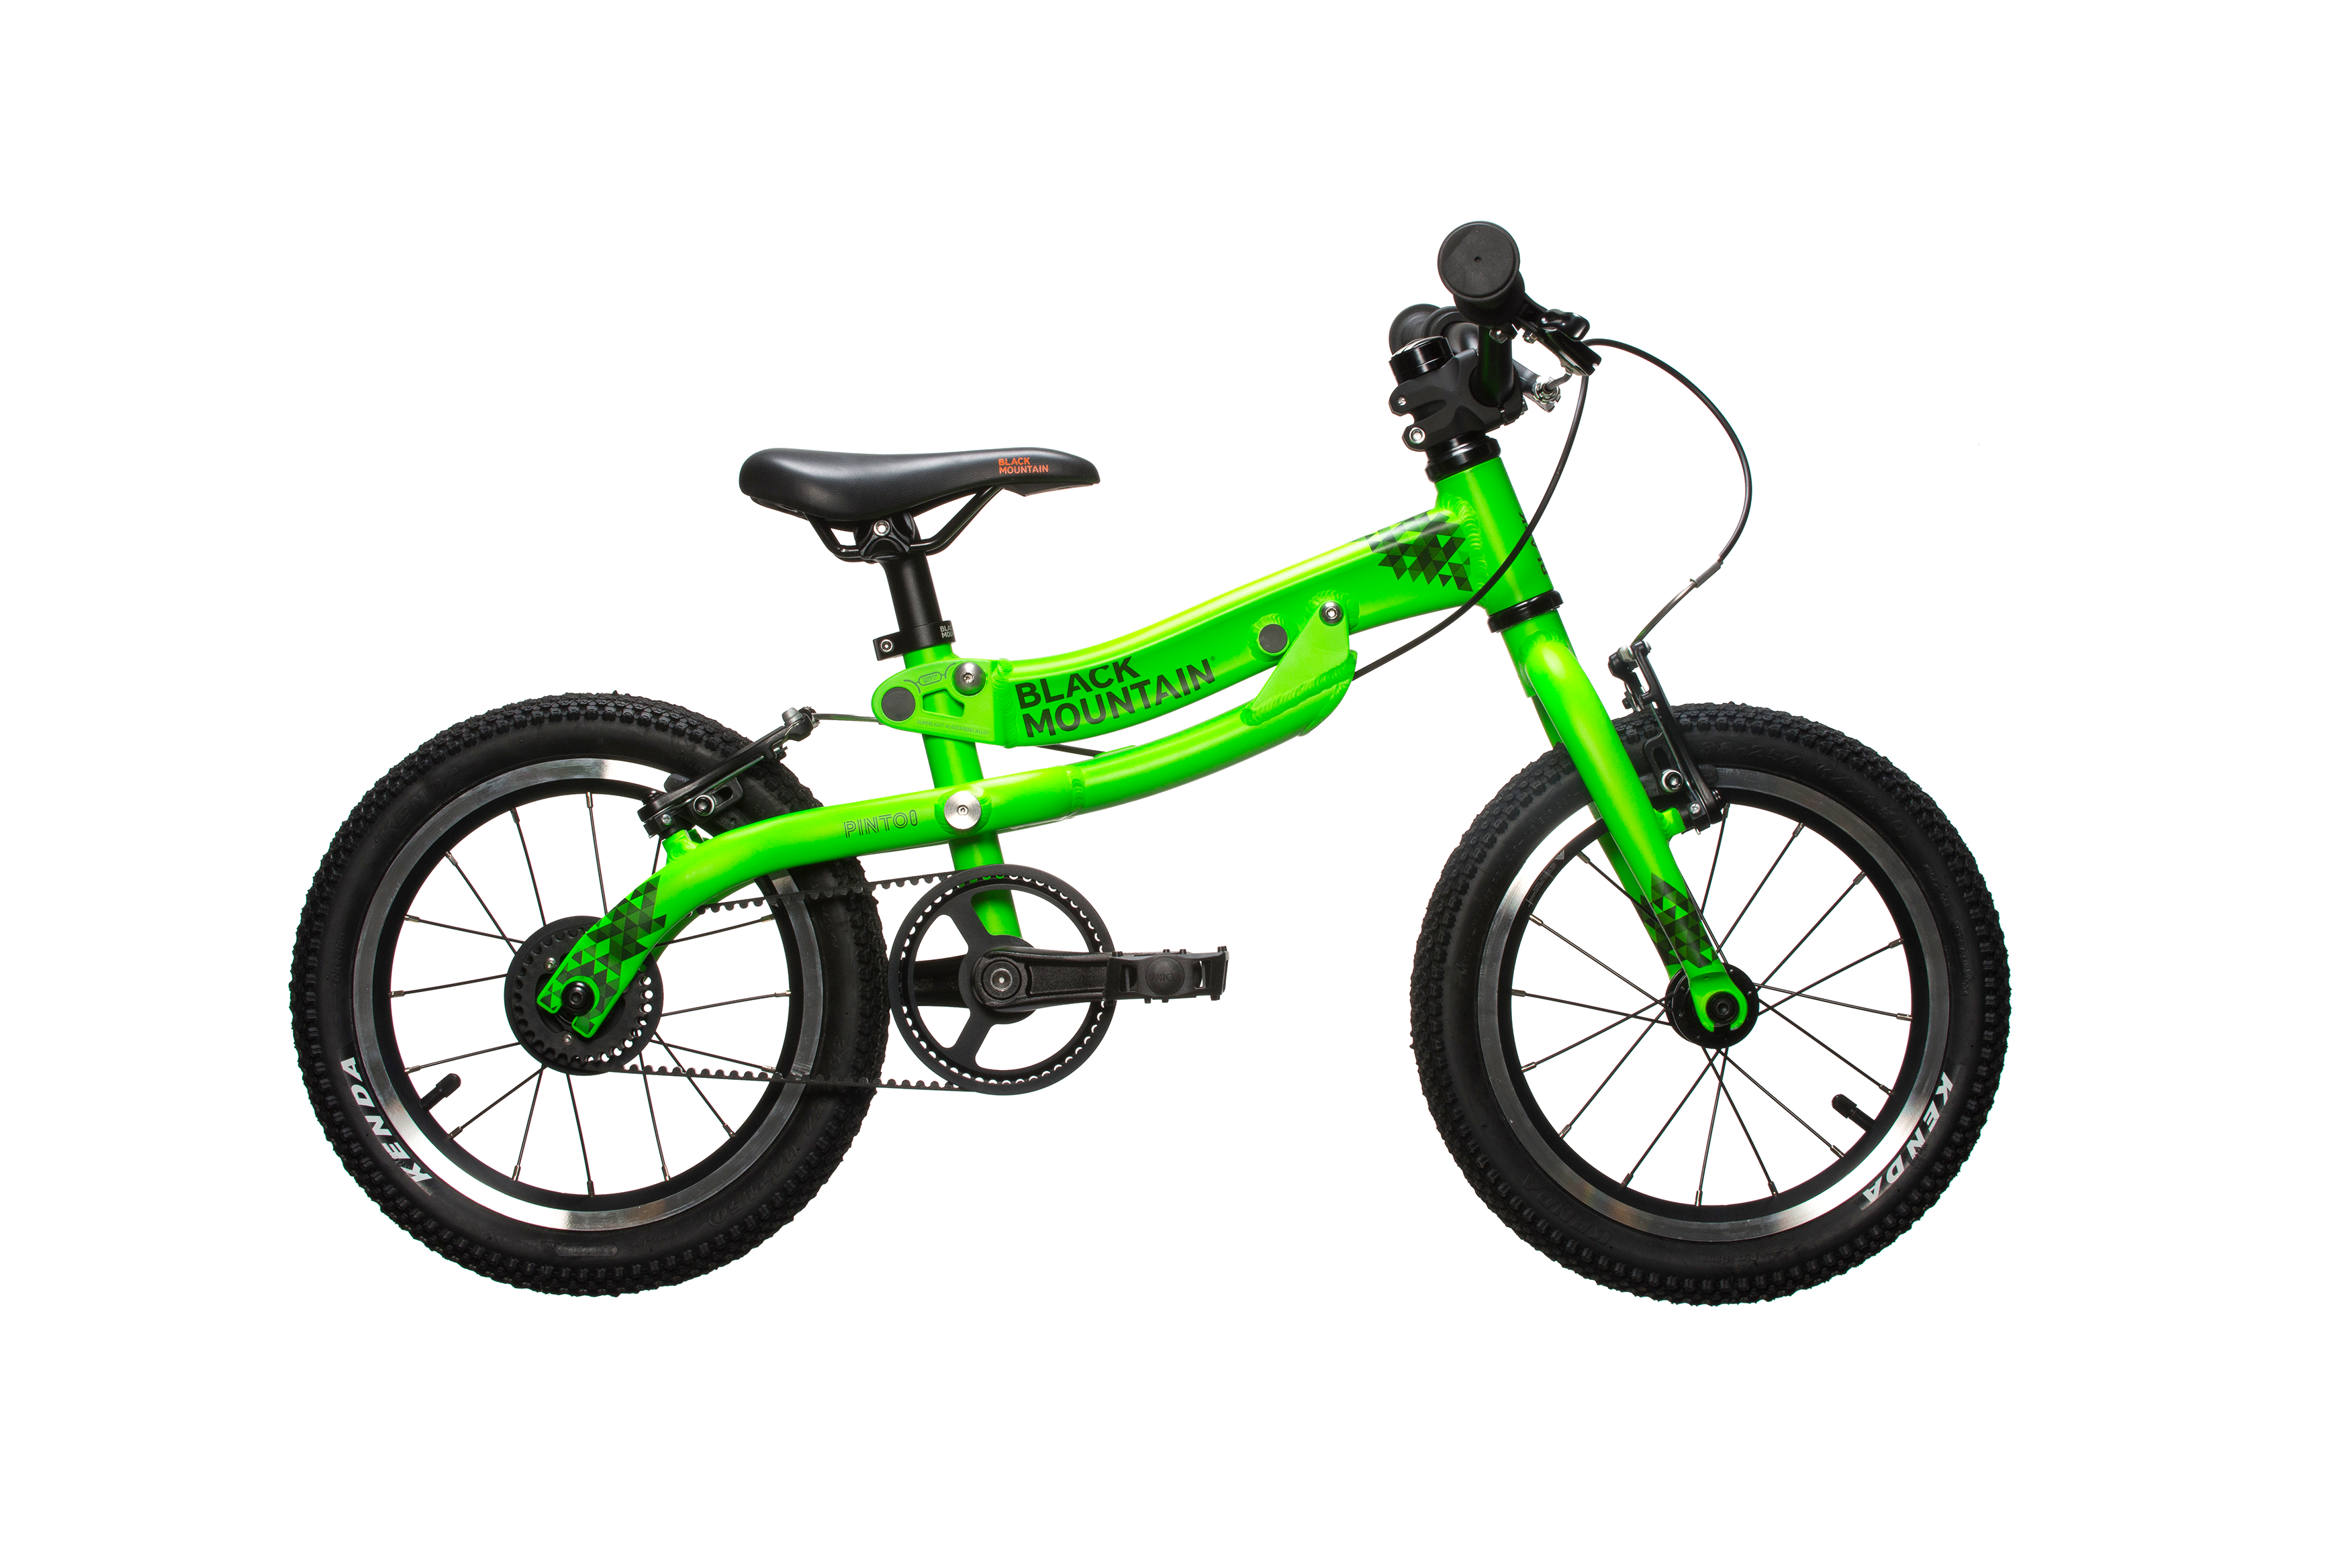 How to choose a bike for your child?